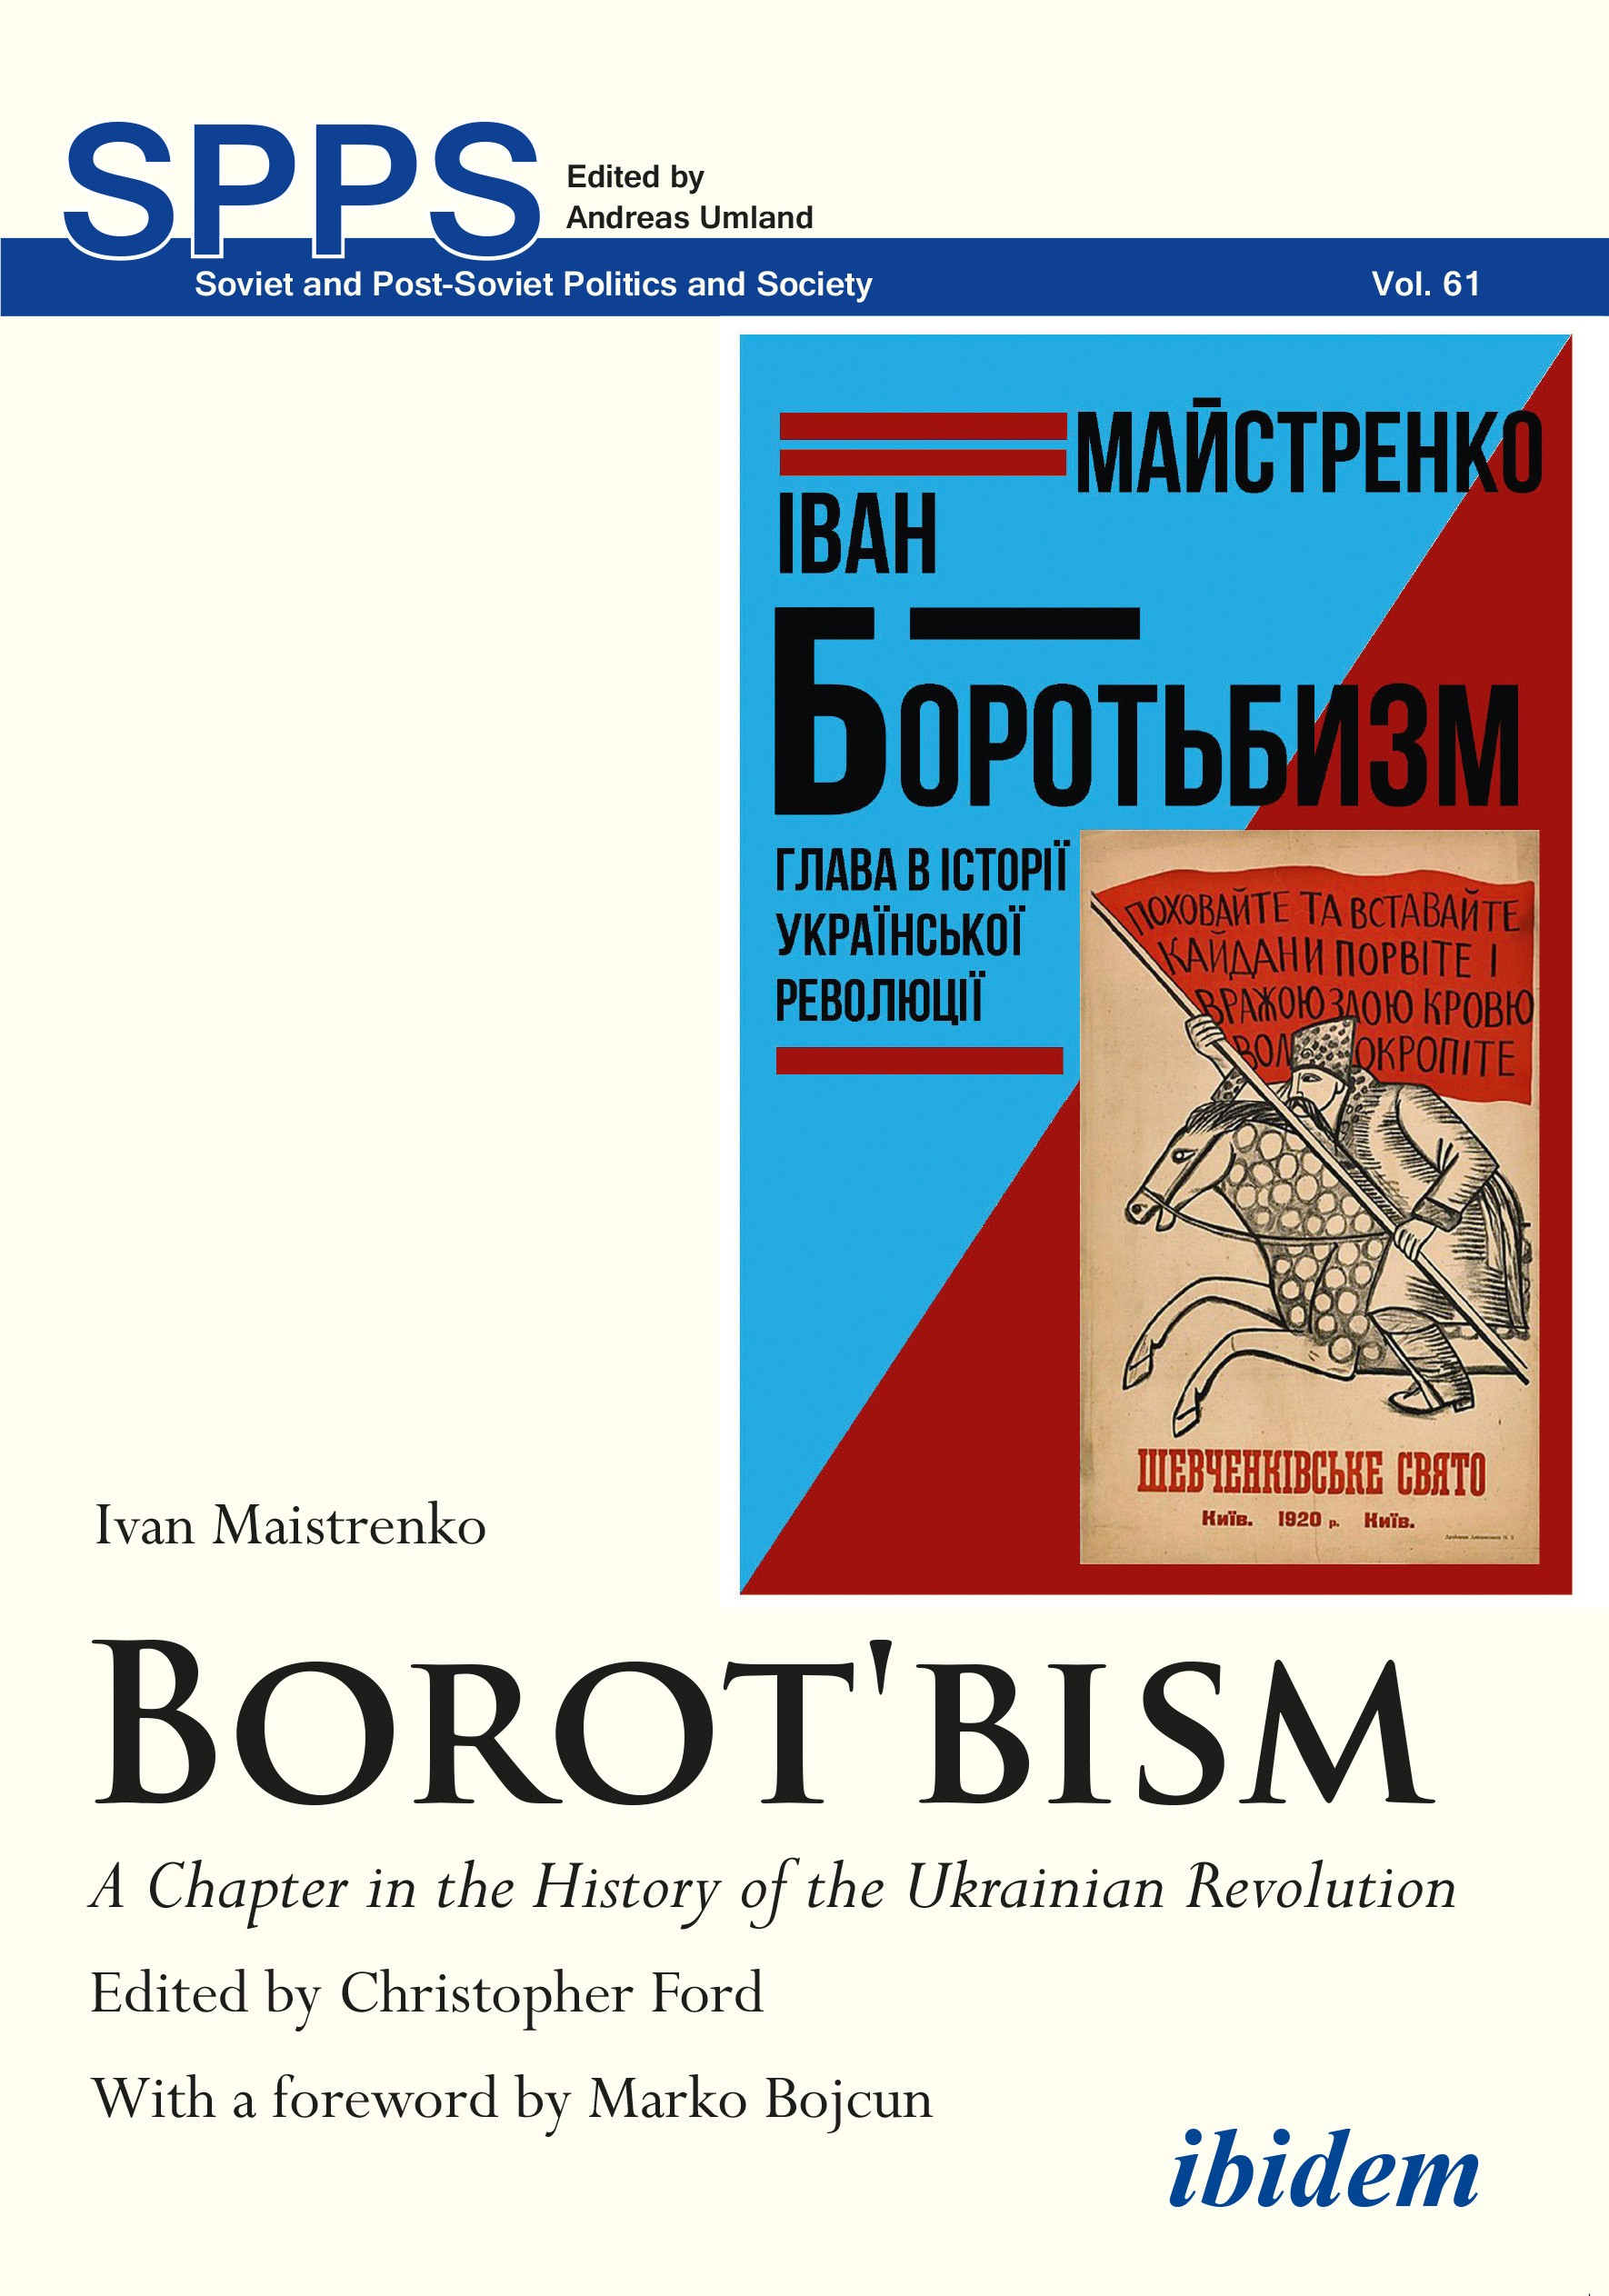 Borotbism: A Chapter in the History of the Ukrainian Revolution